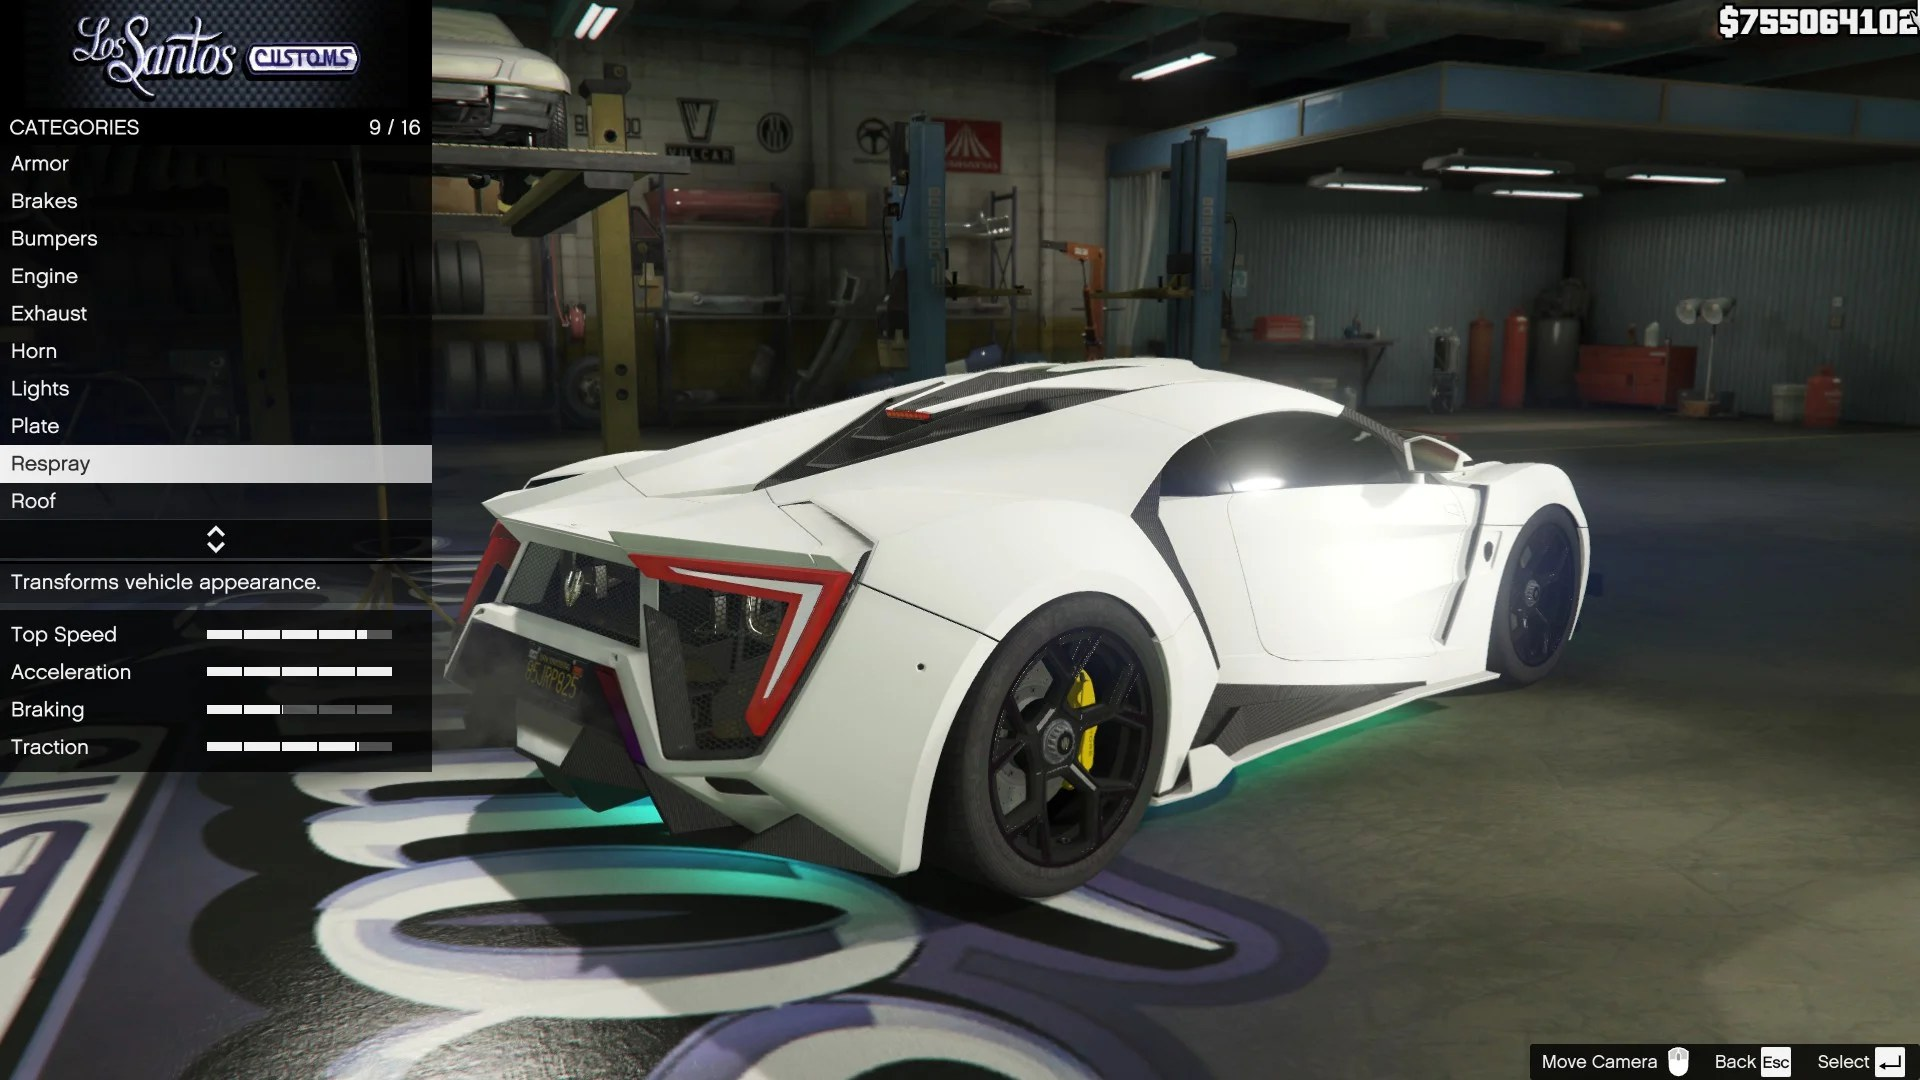 Fast And Furious Cars Hd Wallpapers 2014 Wmotors Lykan Hypersport Furious 7 Tuning Gta5